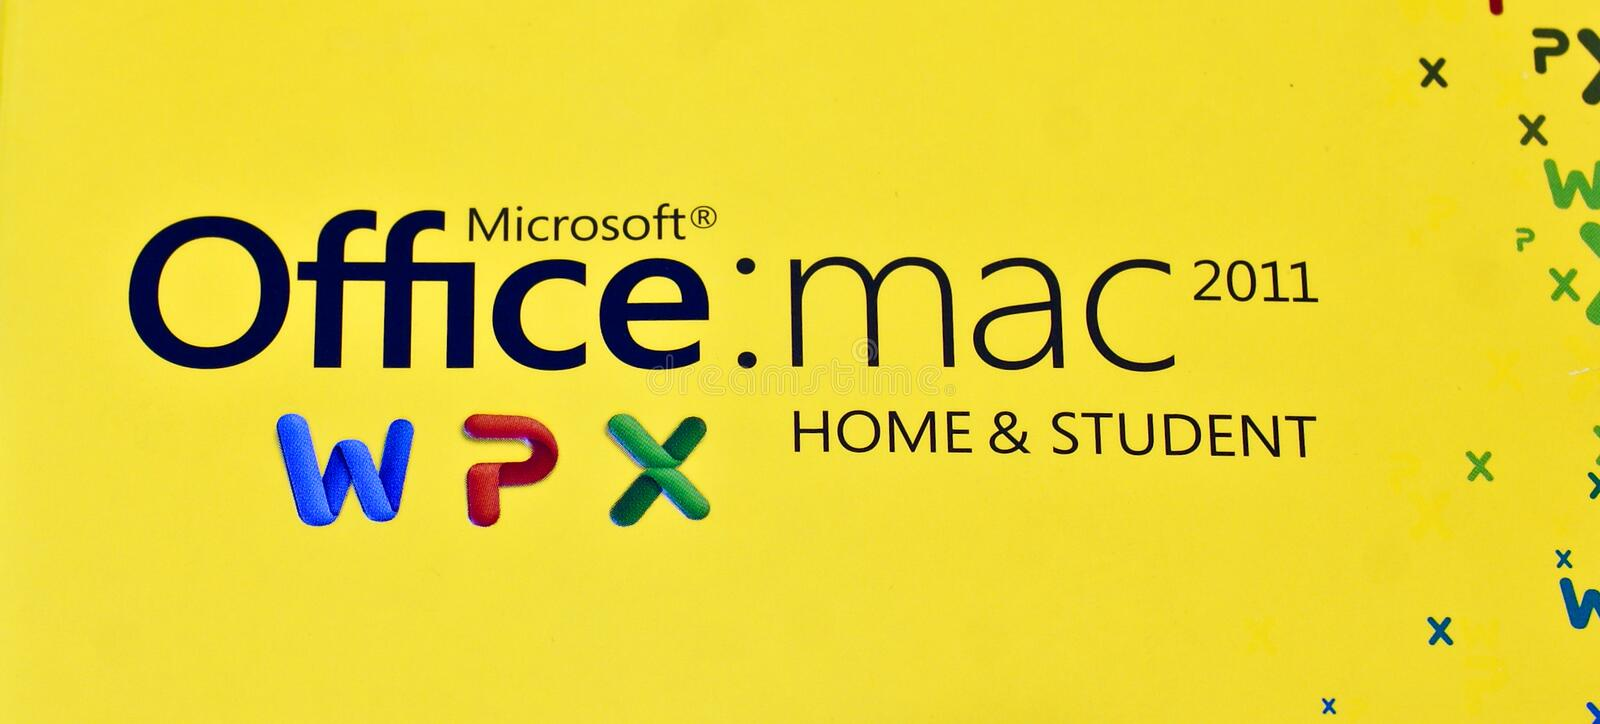 MS Logo of Office Mac 2011 Home & Student edition stock photography